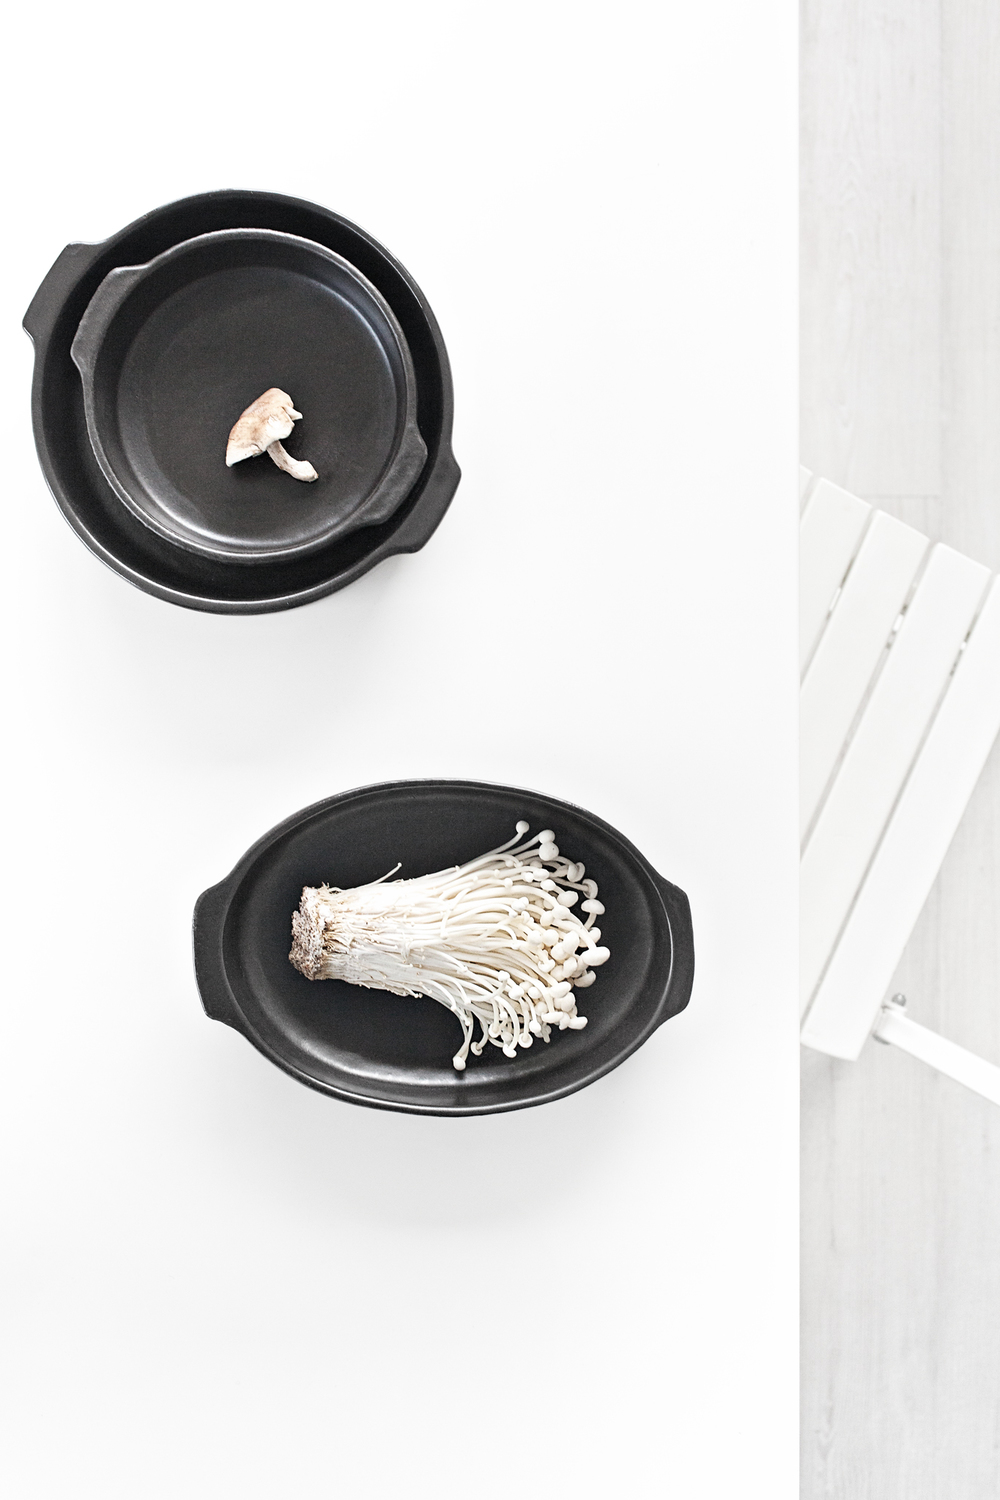 Pure Tableware & Ovenware from Pascale Naessens for  Serax